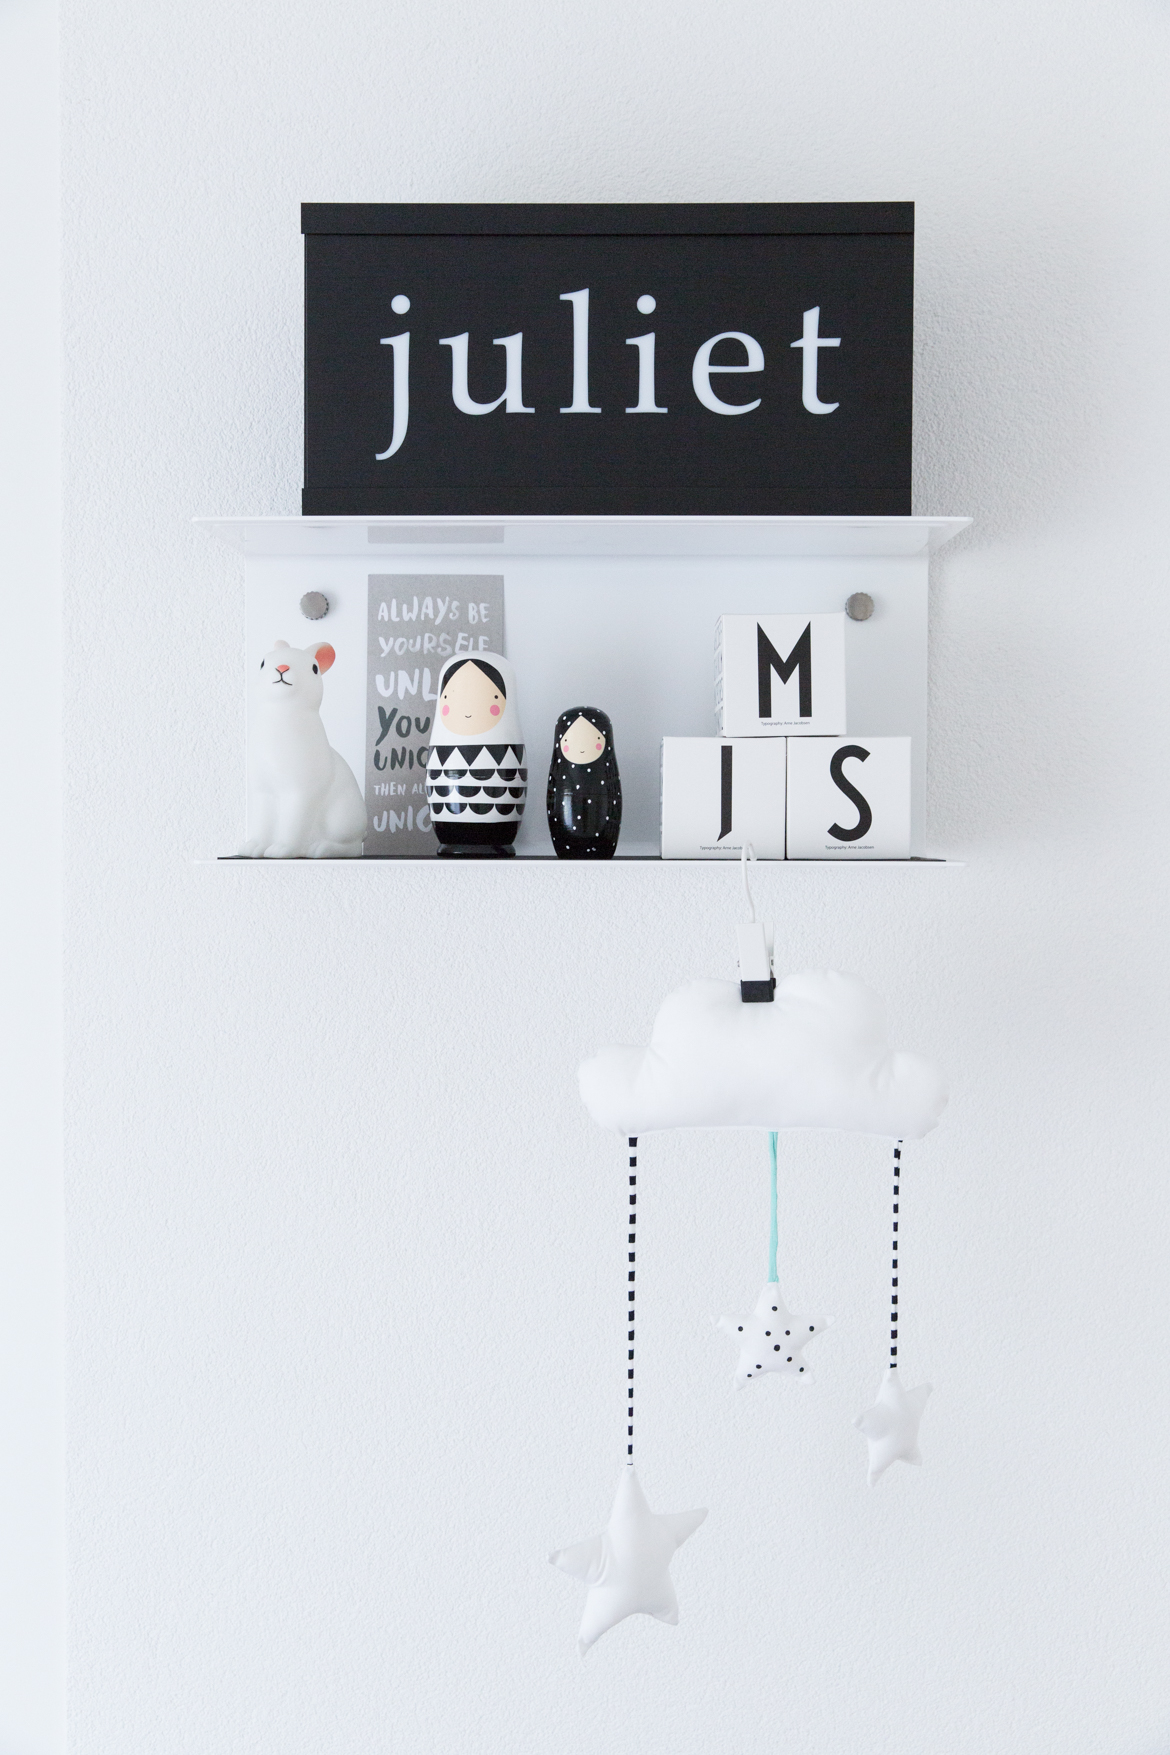 Juliet's Room